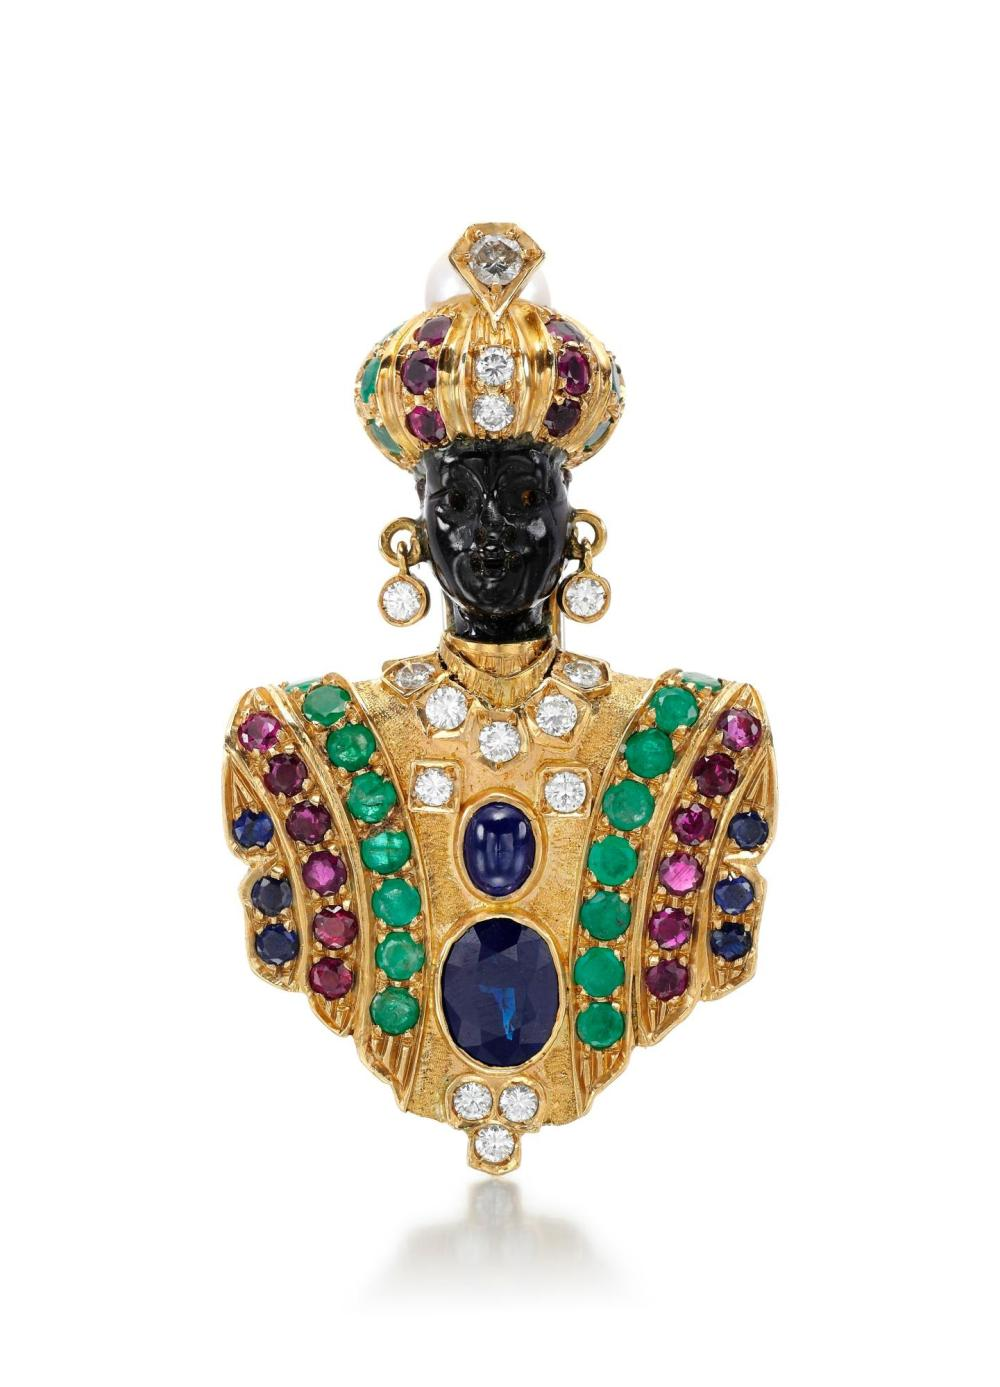 GEM SET, CULTURED PEARL AND DIAMOND BROOCH, NARDI